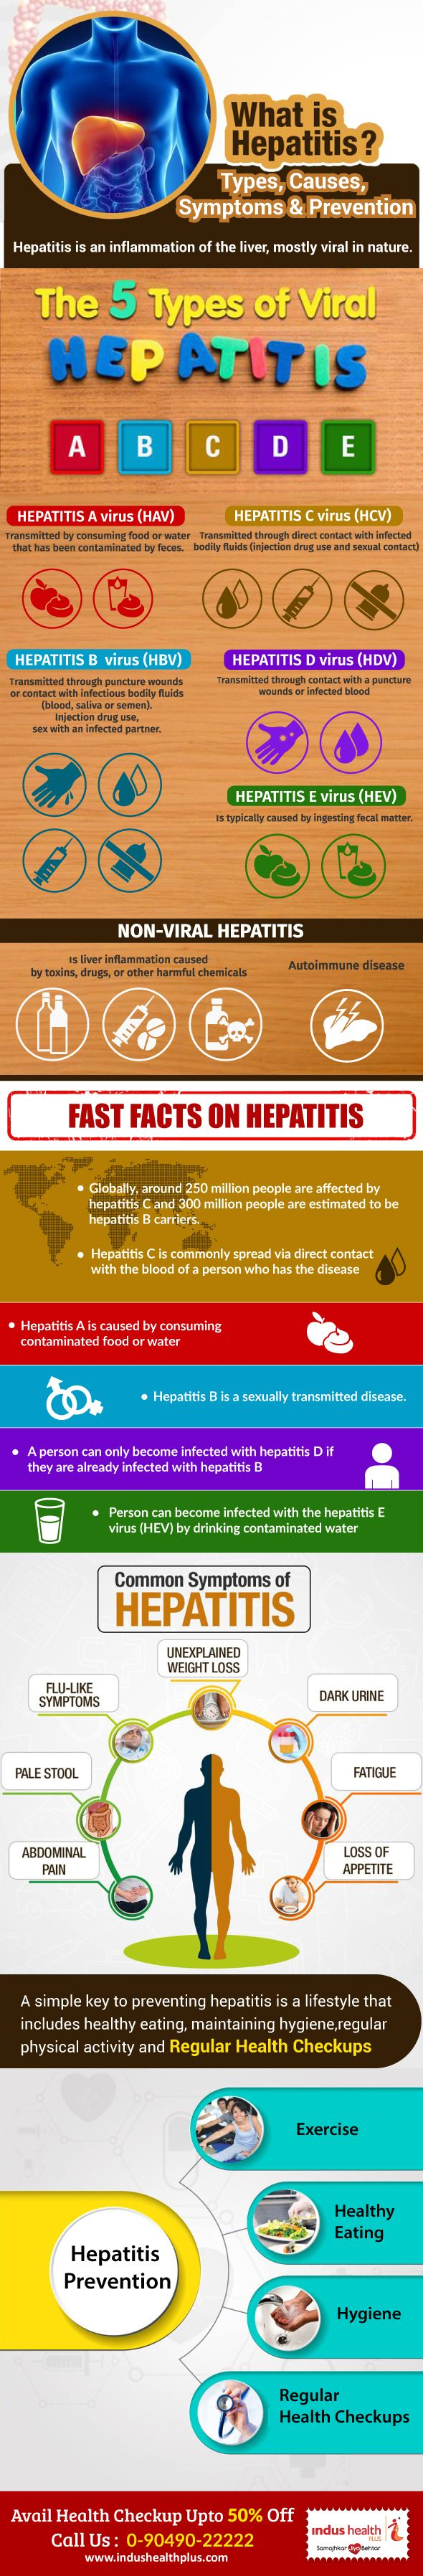 Hepatitis Liver infection types causes prevention